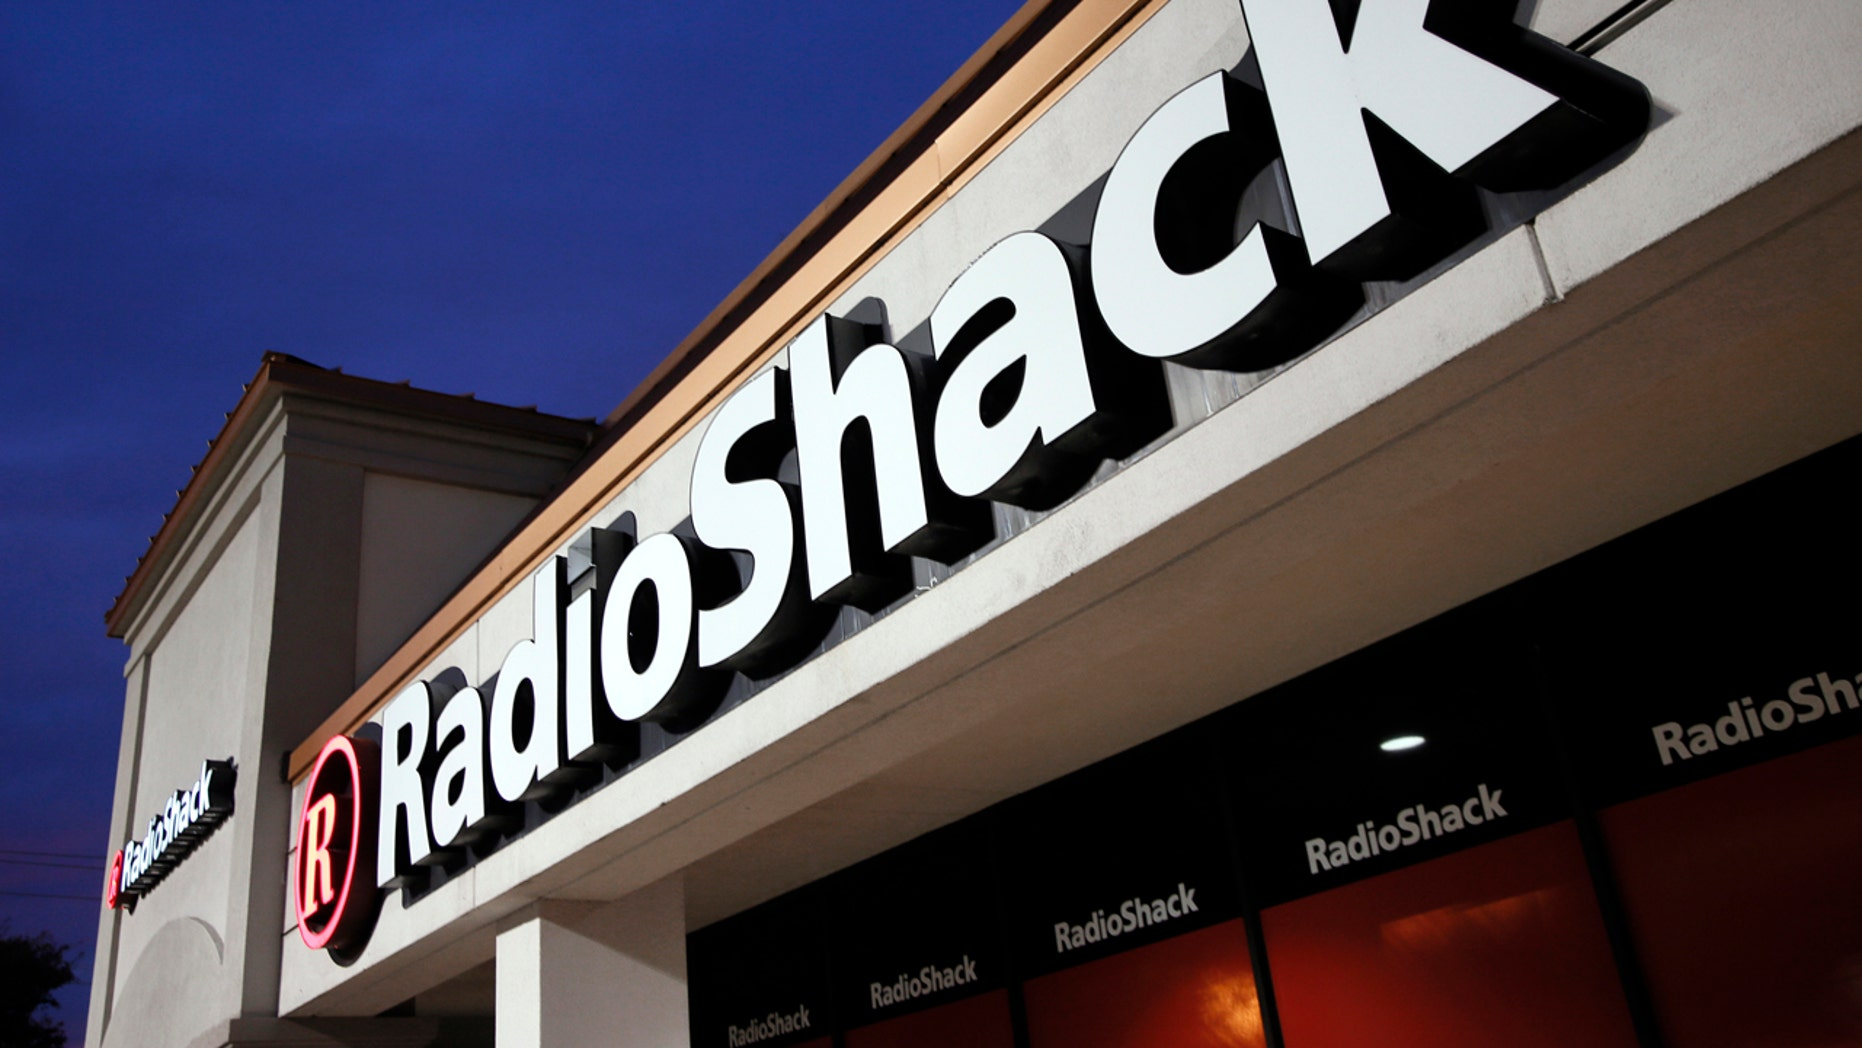 FILE - This Tuesday, Feb. 3, 2015 file photo shows a RadioShack store in Dallas. Troubled electronics retailer RadioShack has filed for bankruptcy for the second time in just over two years.